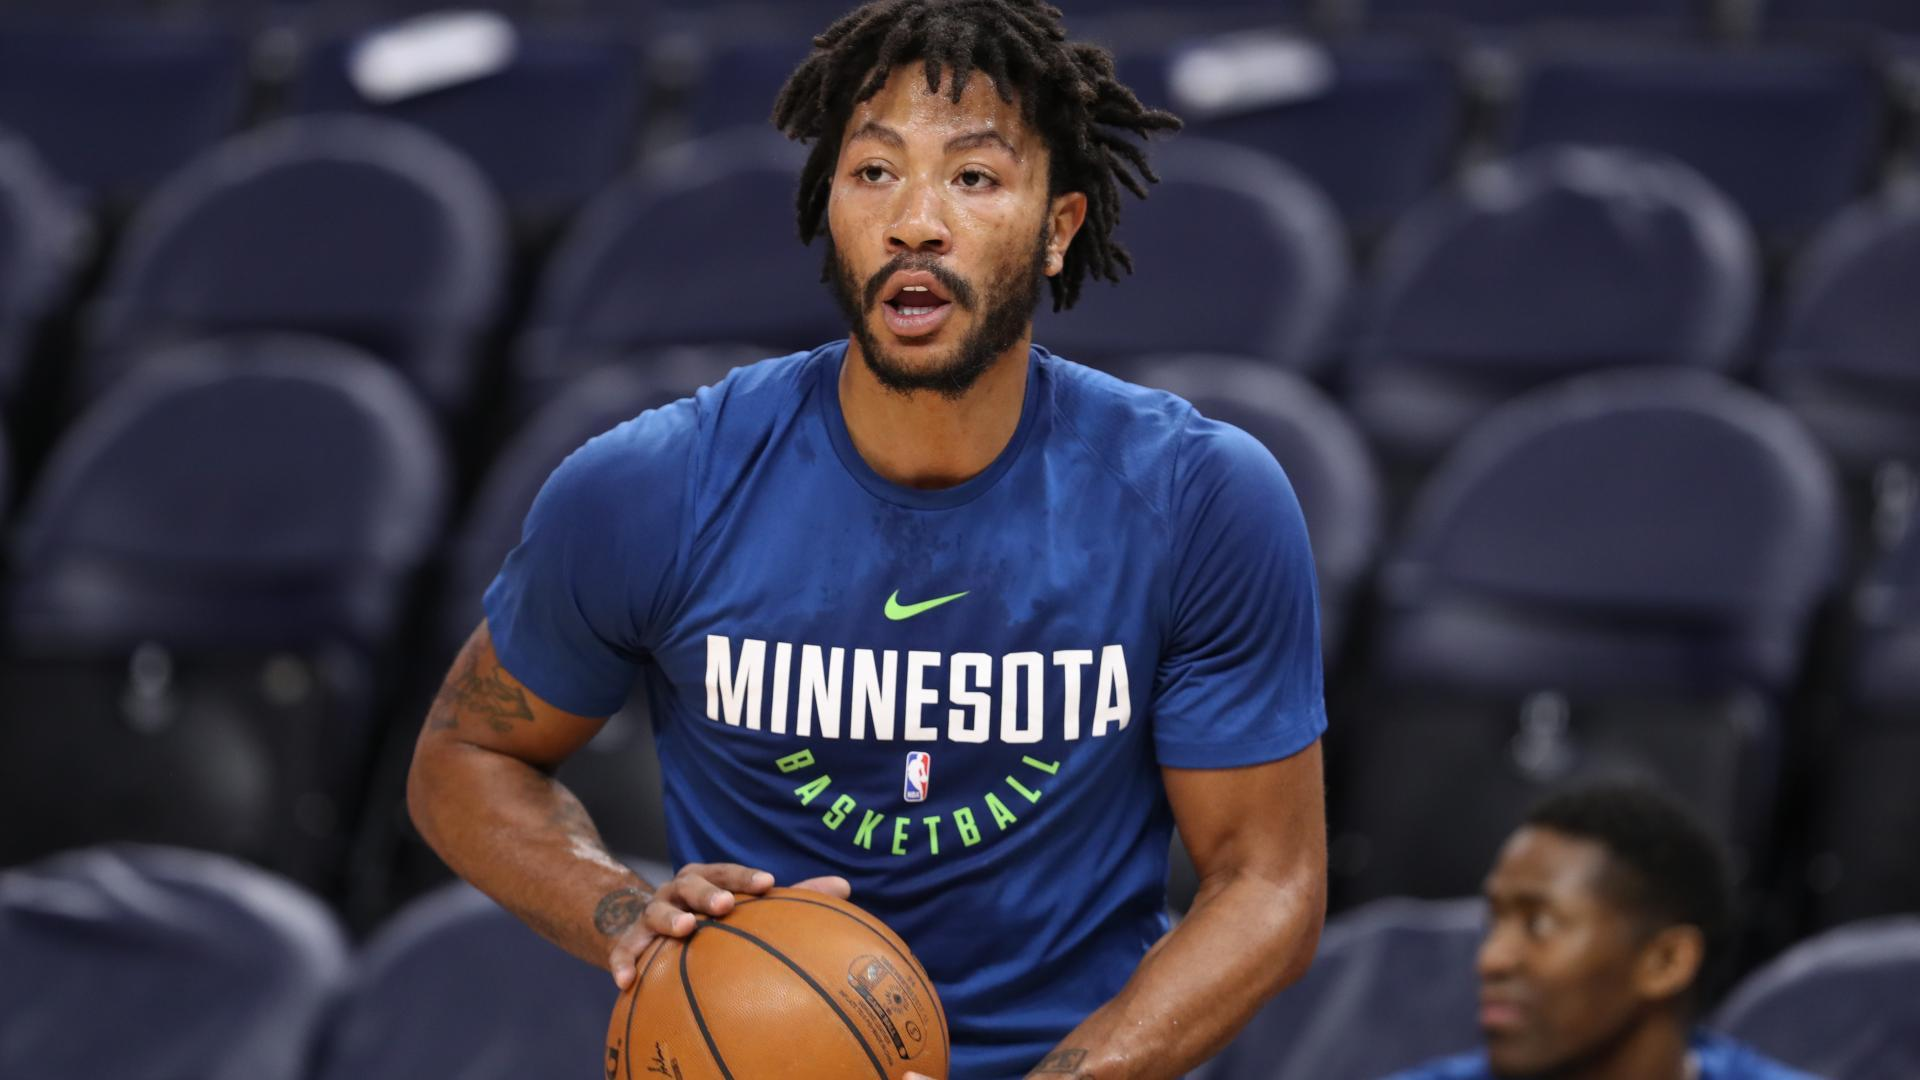 e6e9a4dc9d9 Derrick Rose blocks out doubters as he starts new journey in ...